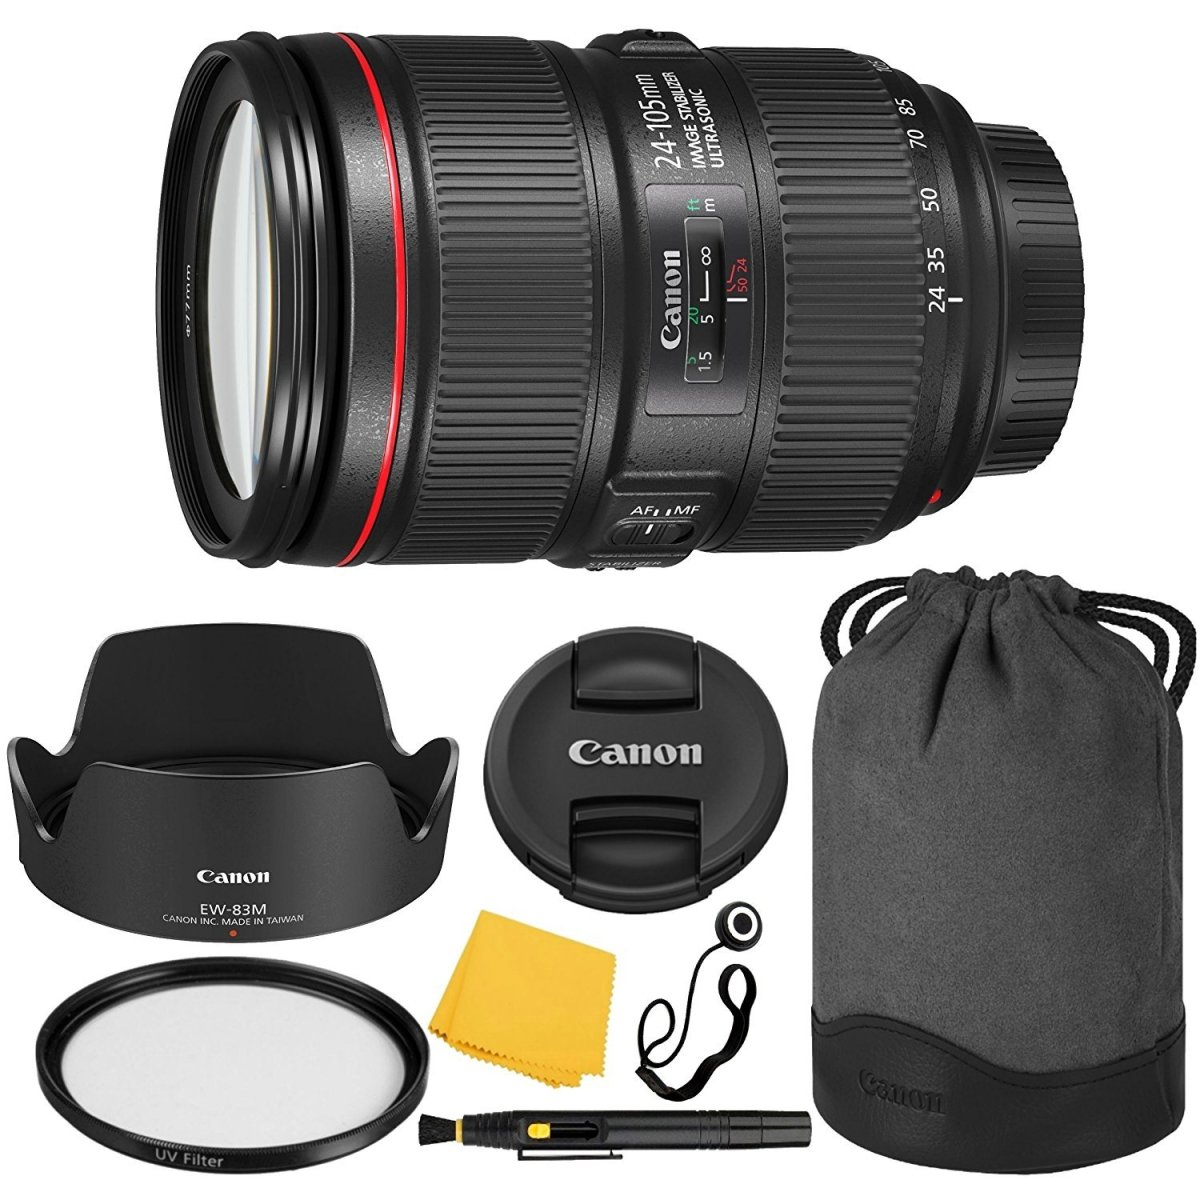 Canon EF 24–105mm f/4L IS II USM Lens + UV Filter + Collapsible Rubber Lens Hood + Lens Cleaning Pen + Lens Cap Keeper + Cleaning Cloth - 24-105mm II IS: Ultrasonics Motor